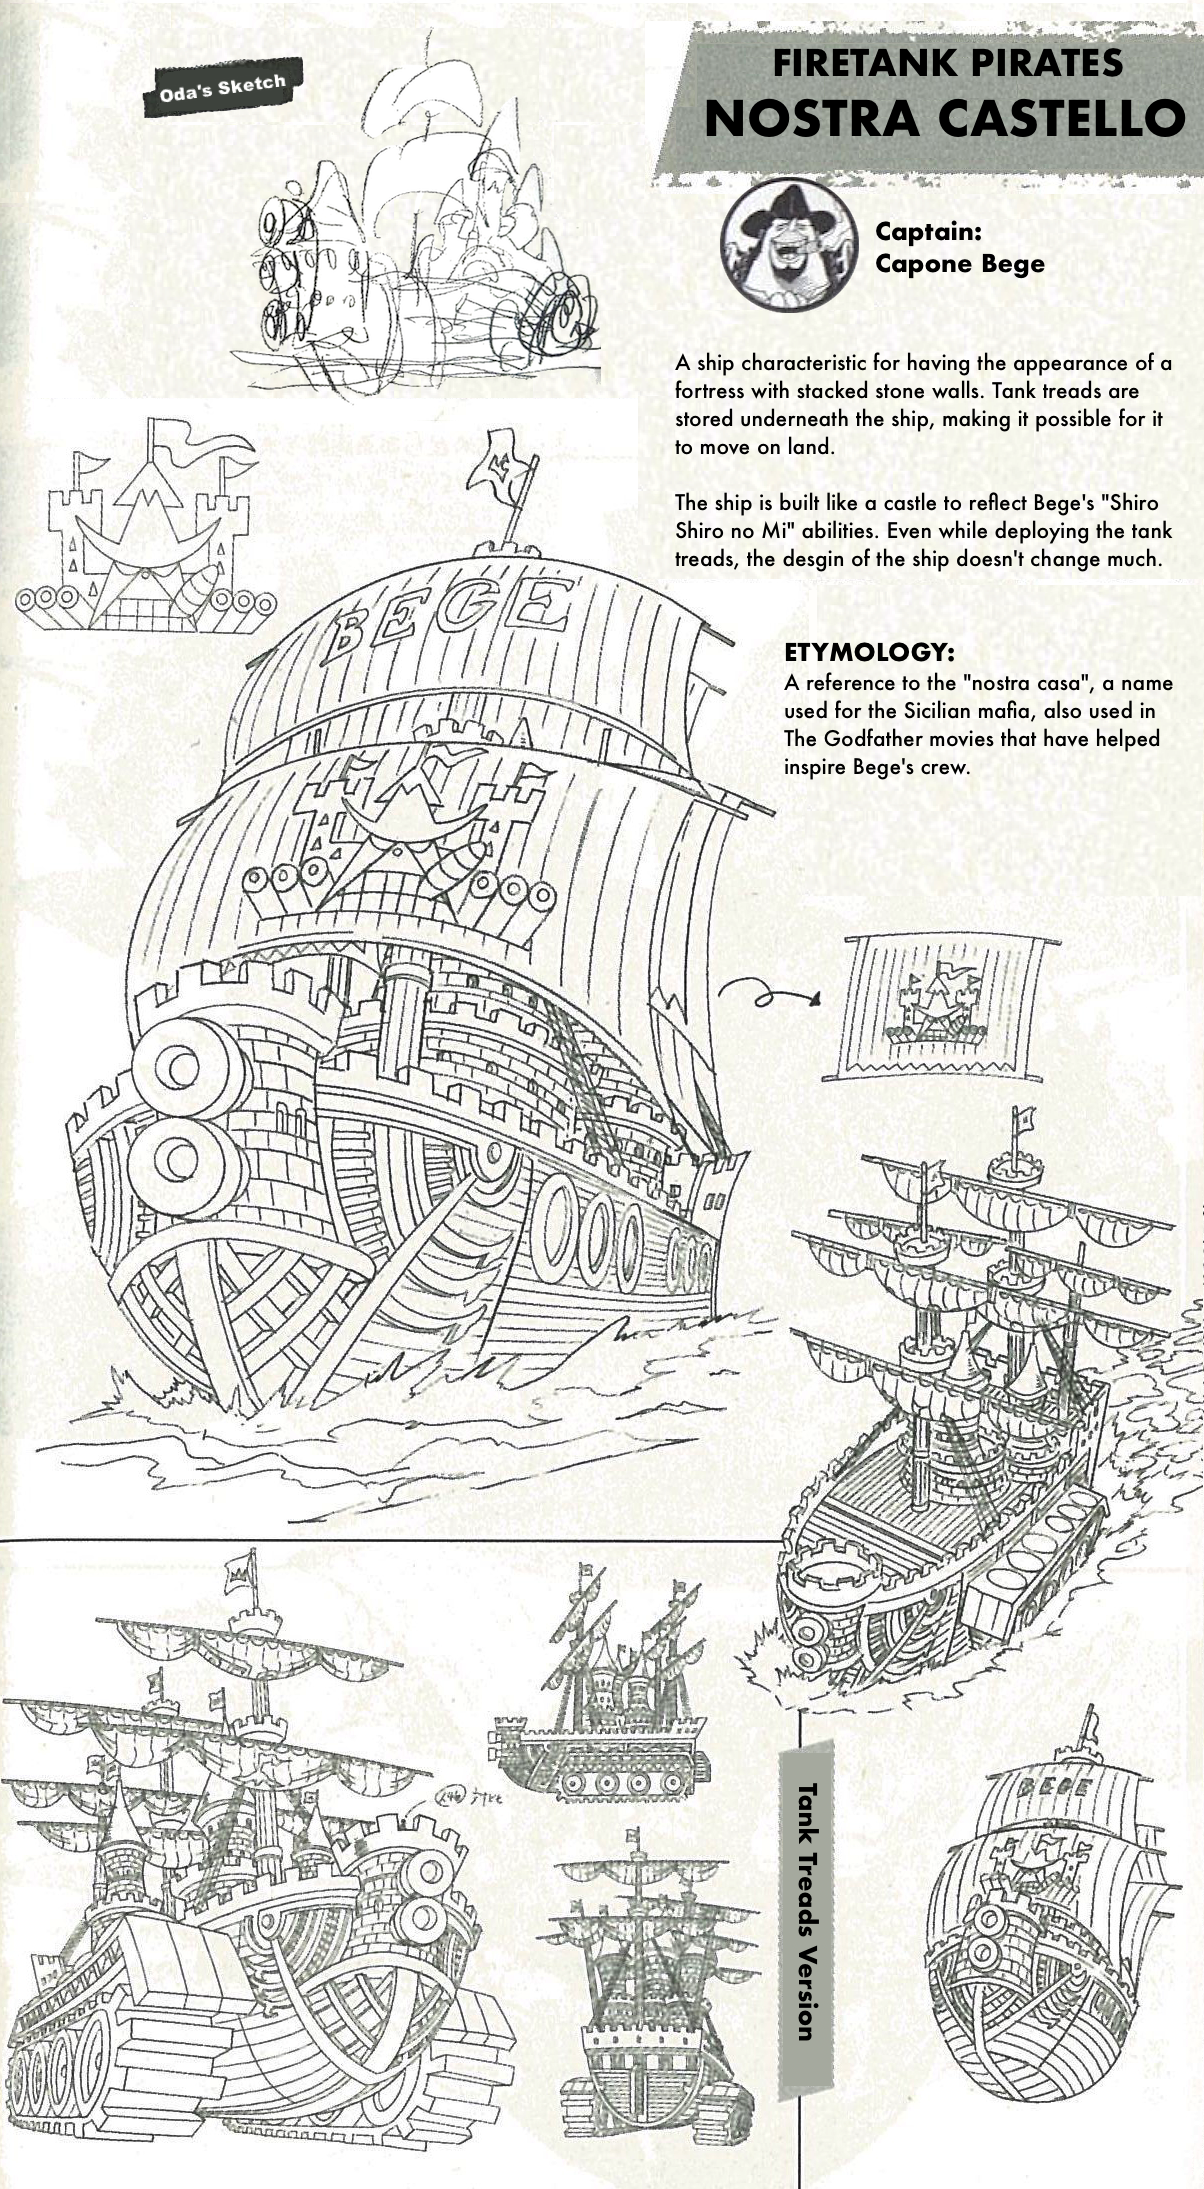 Official Designs of the Supernova Ships by Oda! – The